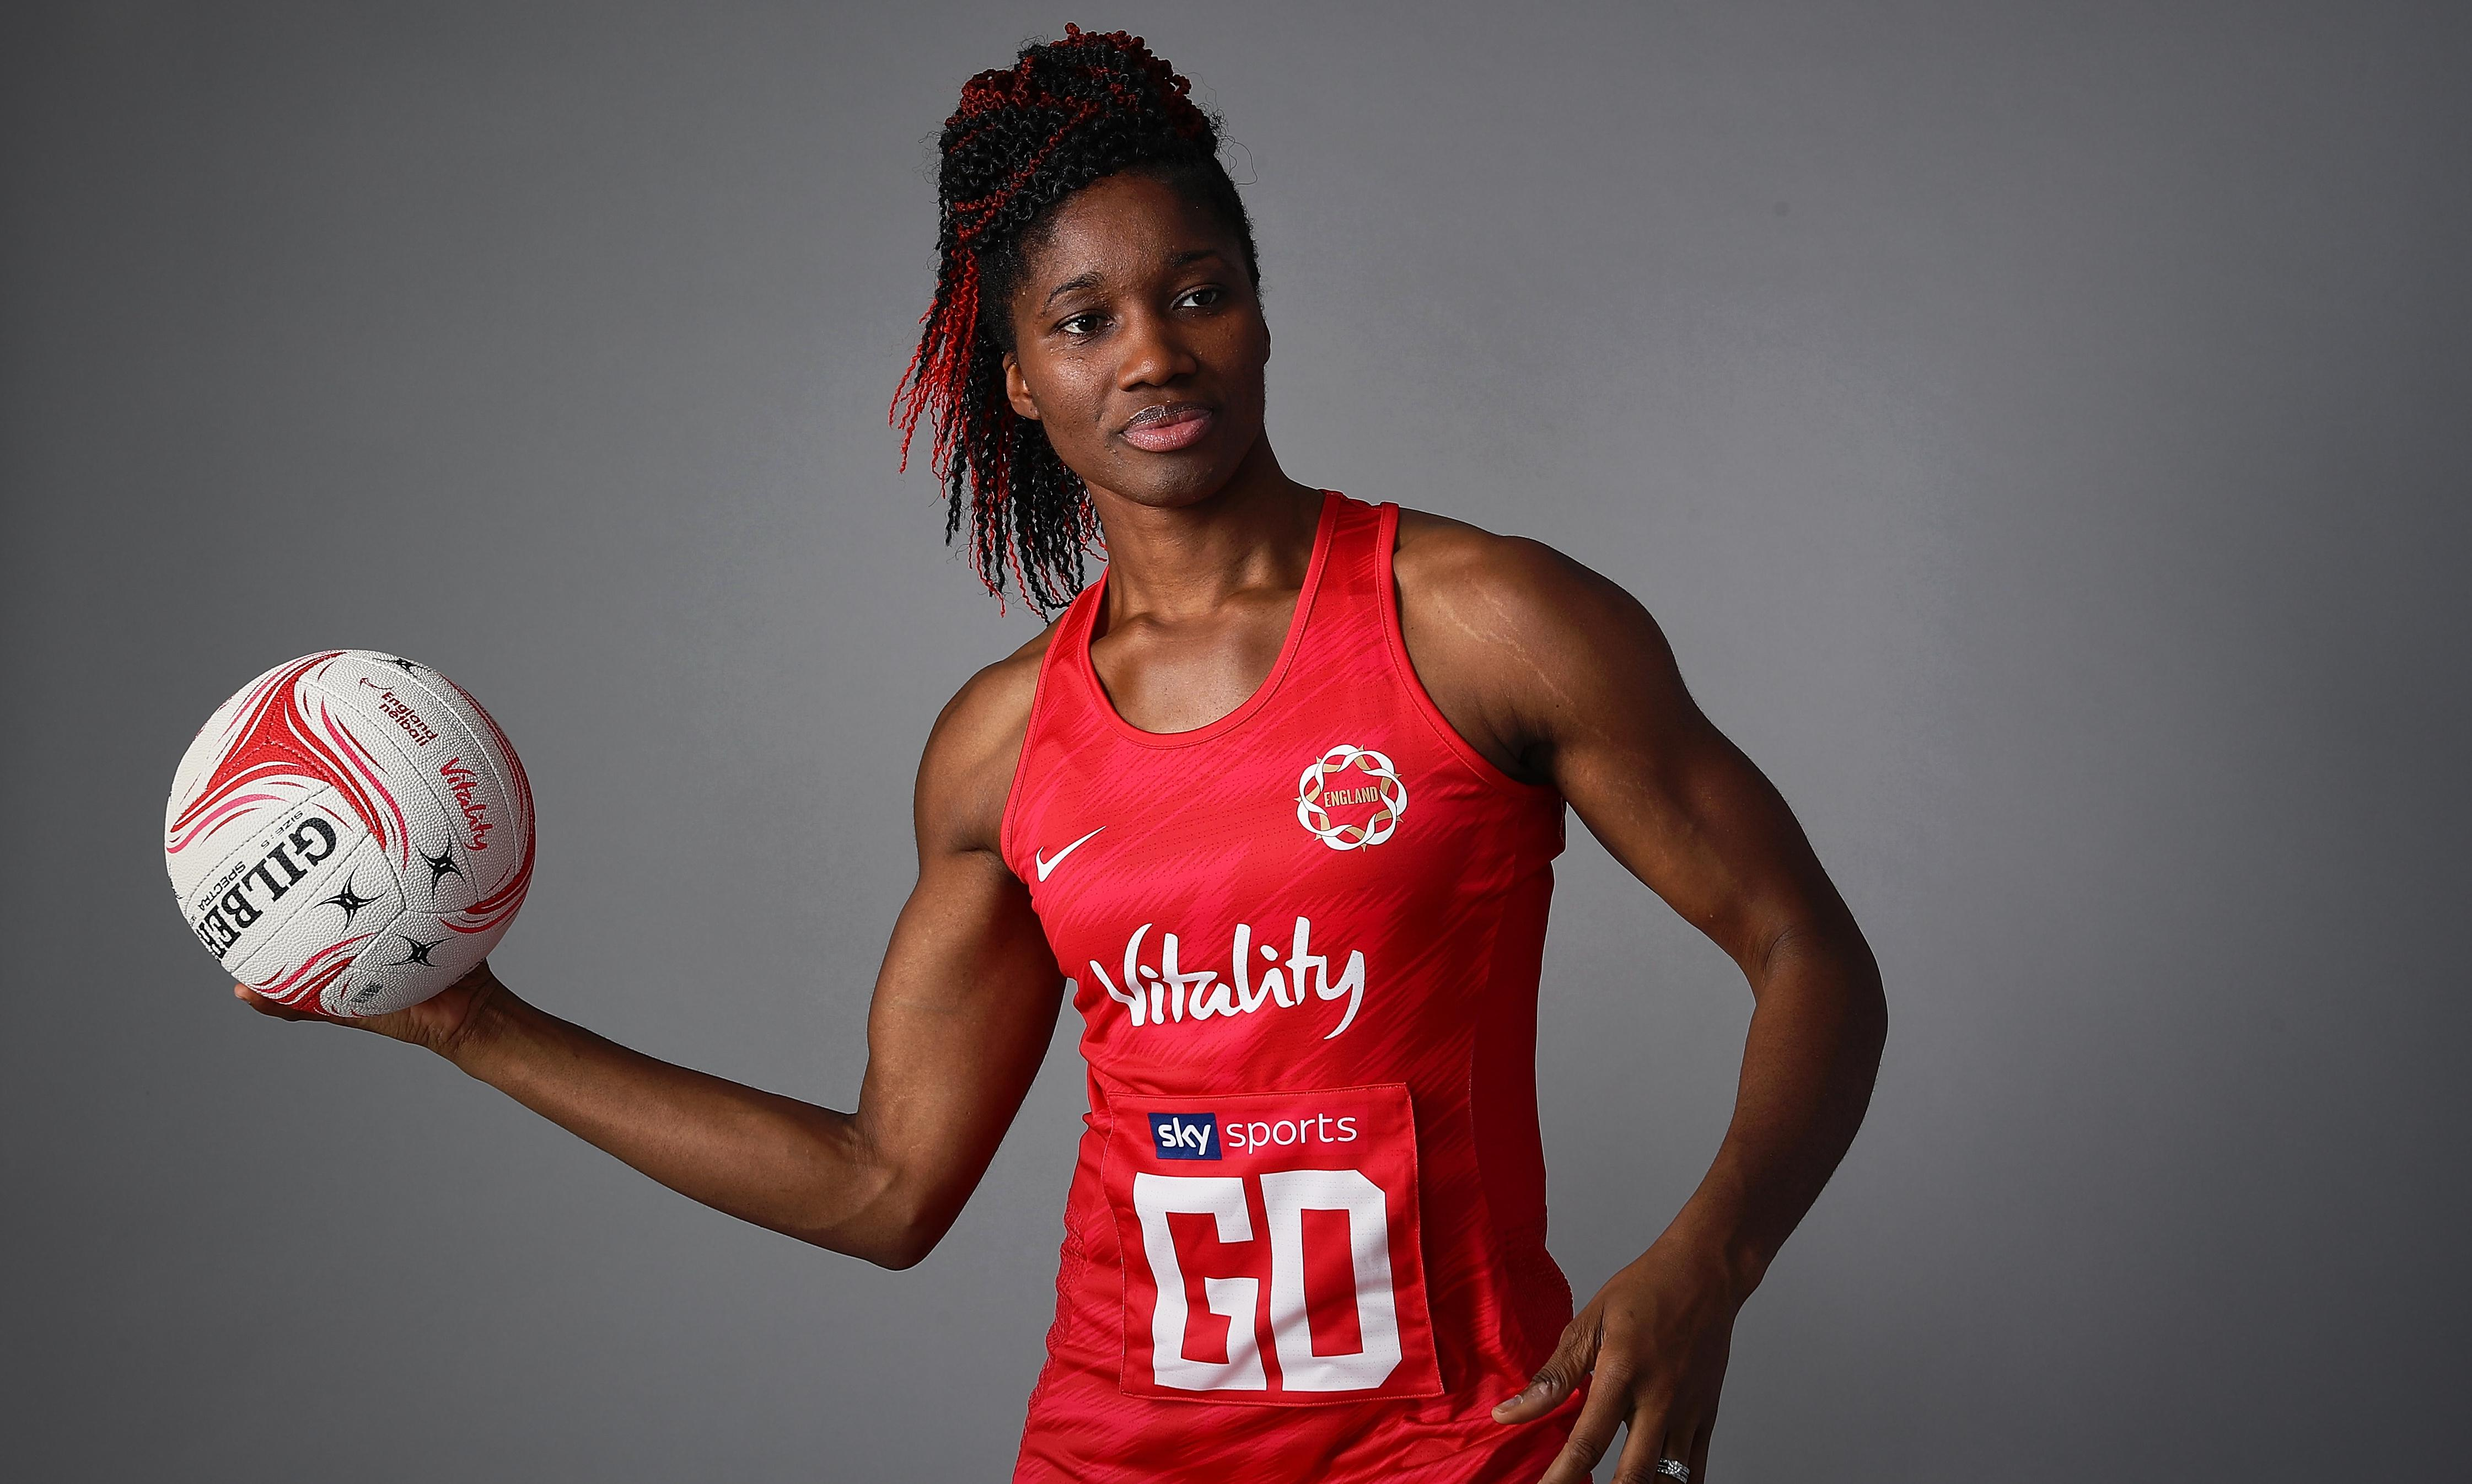 'I did think I had time': England netball captain Agbeze upset by World Cup axe